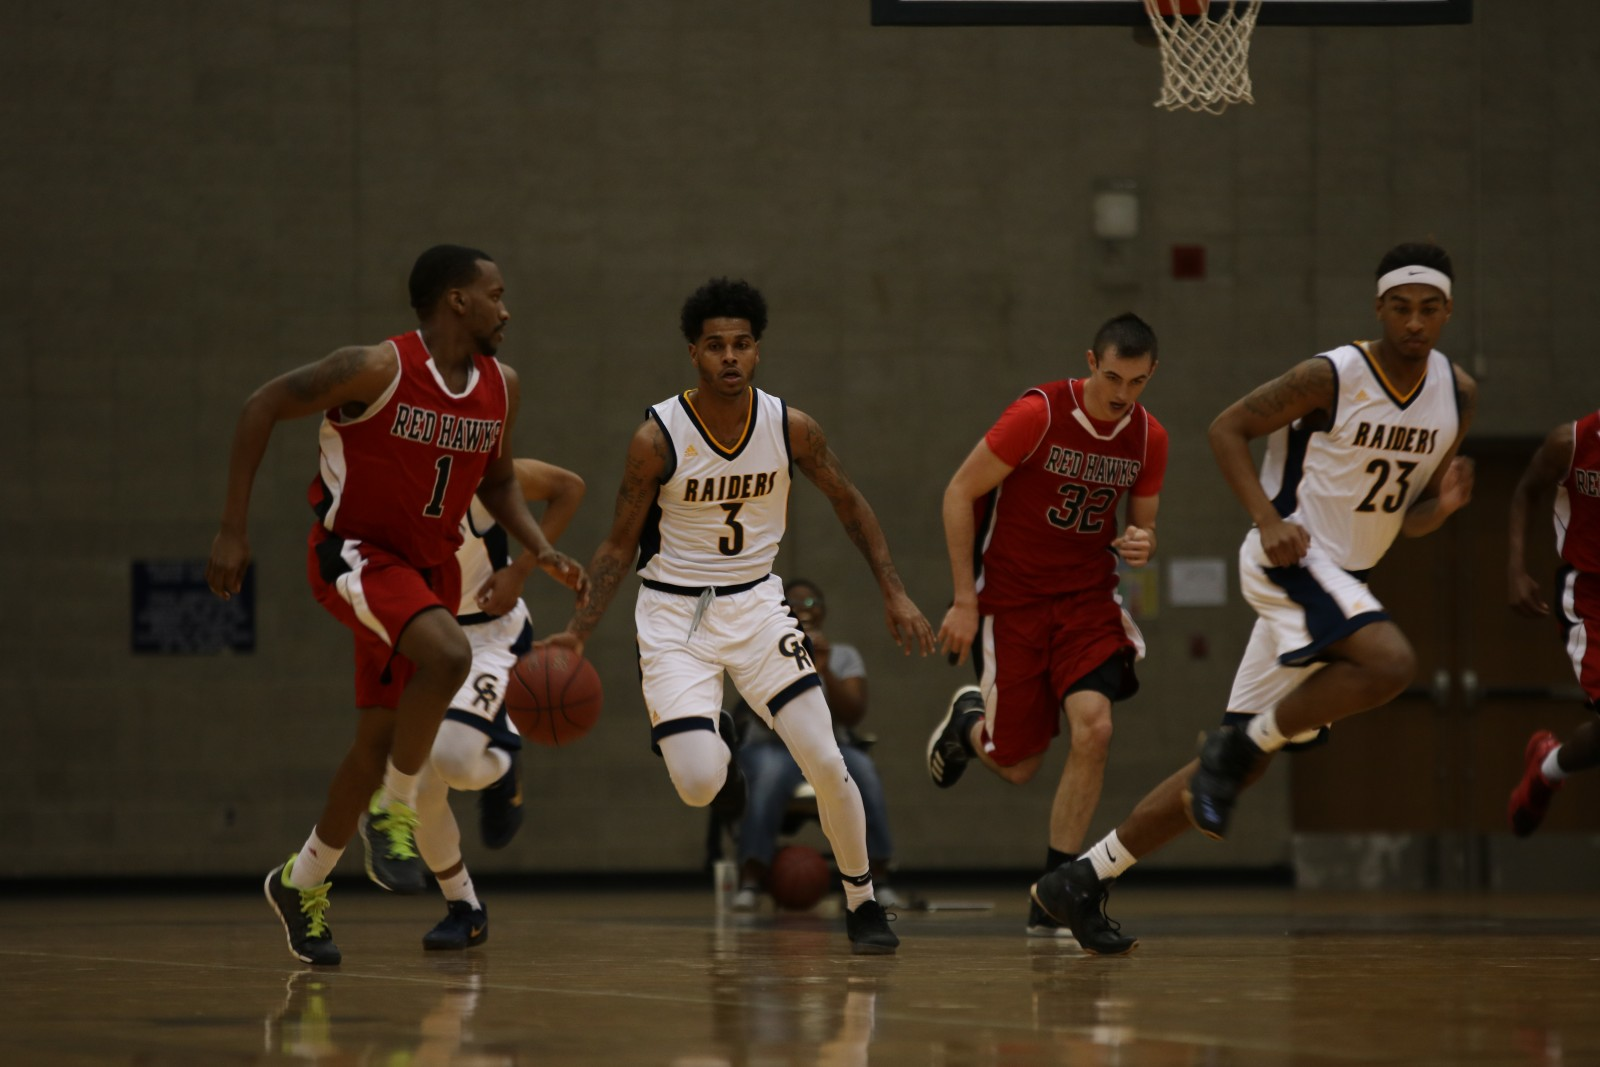 Sophomore Guard, #3, Jeffrey Drake-Todd dribbling through traffic and up the court for GRCC.